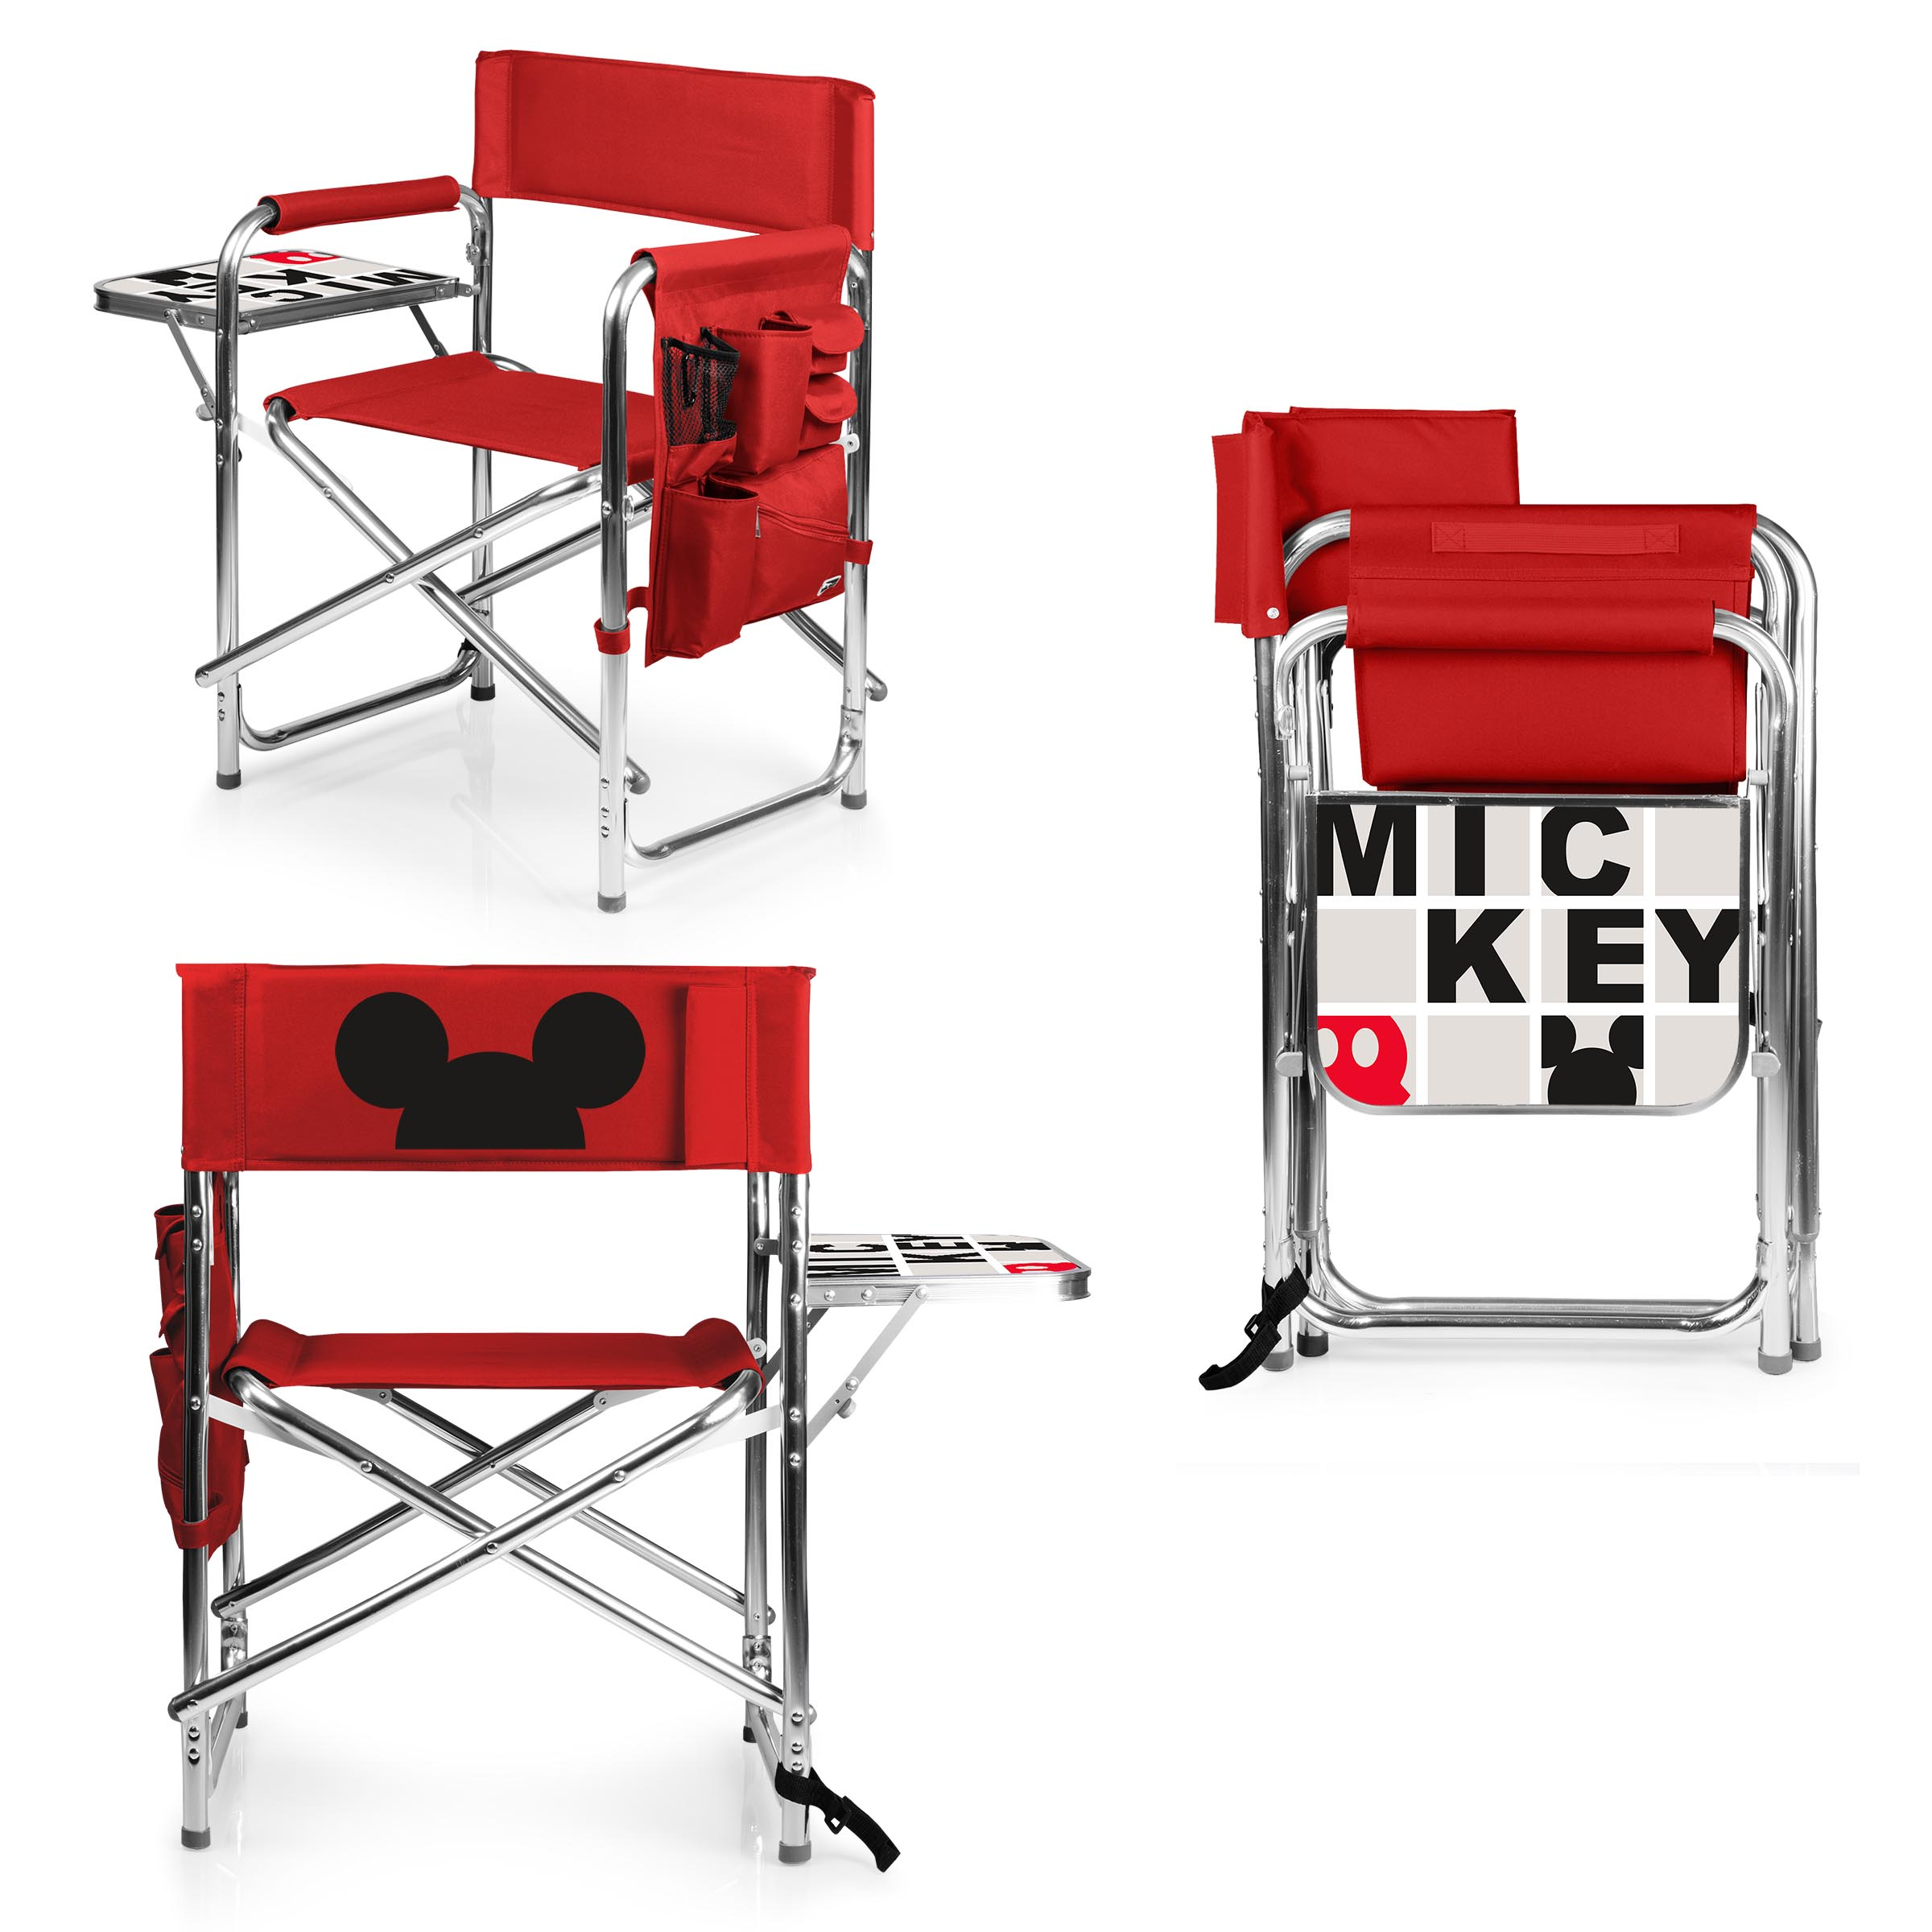 Picnic Chair Mickey Mouse Sports Chair By Picnic Time Red Picnic